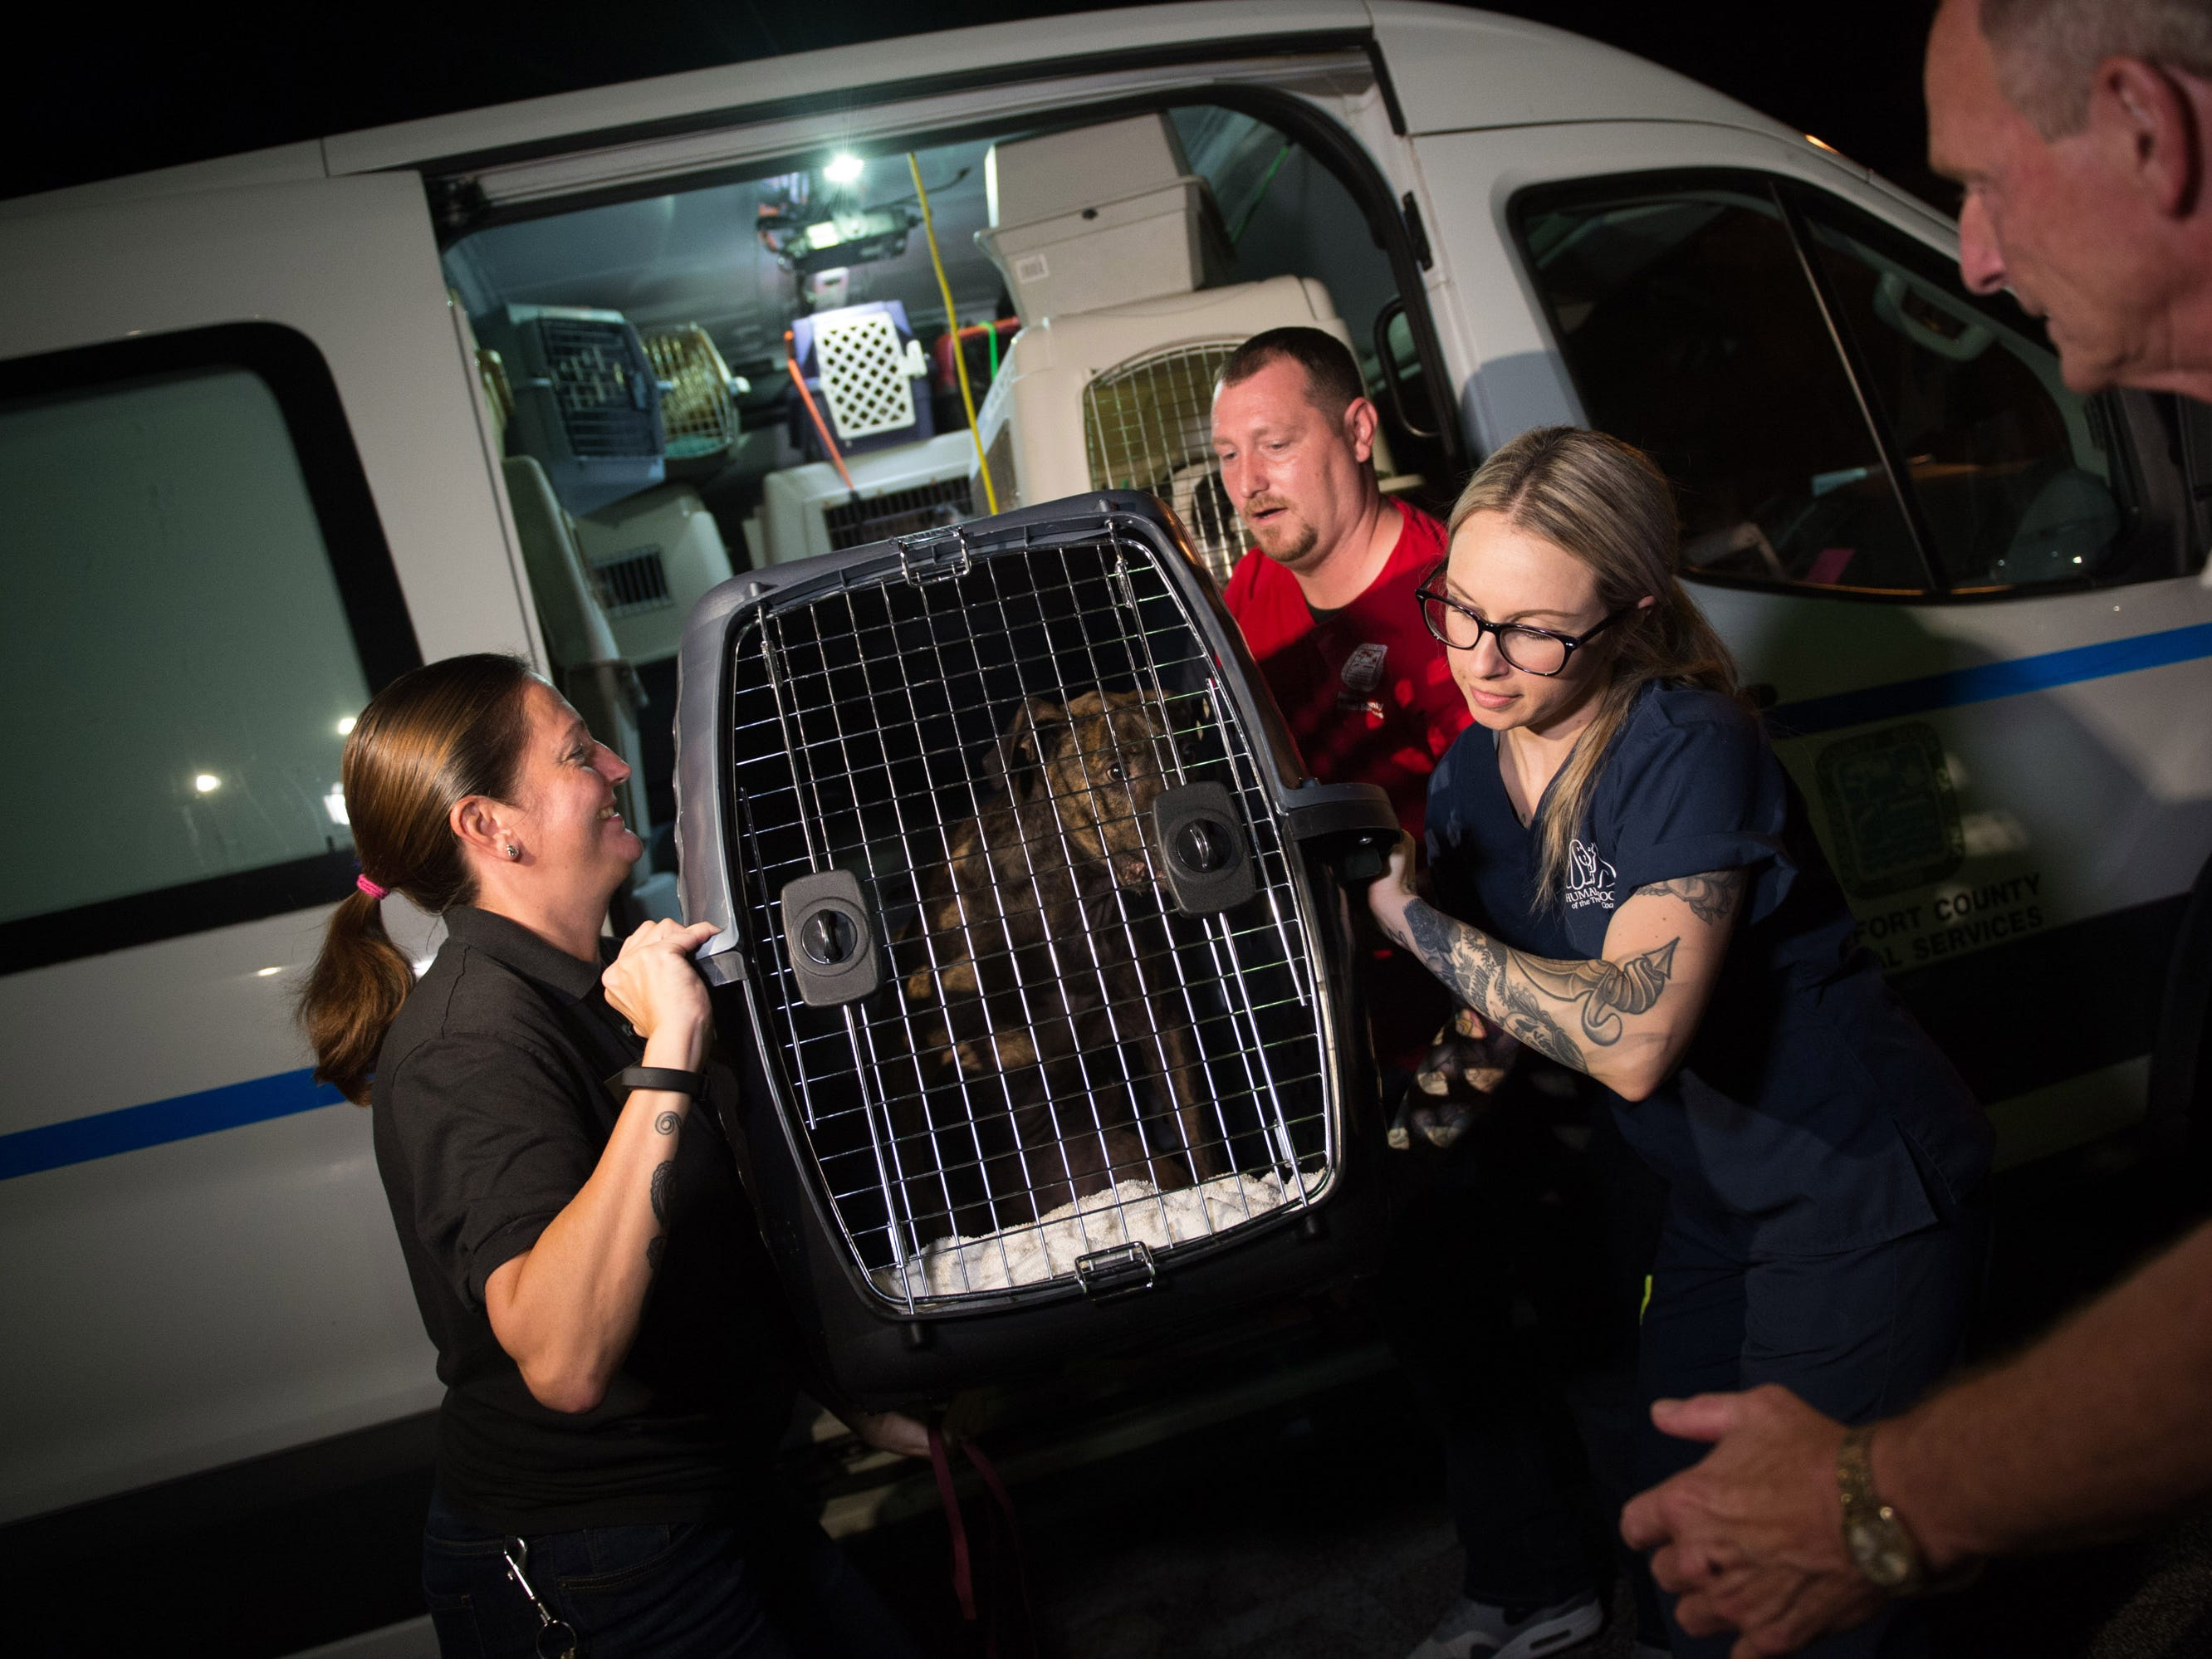 The Humane Society of the Treasure Coast in Palm City took in 48 animals (17 dogs and 31 cats) that the Beaufort County Animal Shelter & Control in South Carolina was forced to evacuate Wednesday, Sept. 12, 2018, from their facility because of the threat of catastrophic flooding from Hurricane Florence. The humane society is offering a special on adoptions to help place these animals by waiving all adoption fees through Sunday.